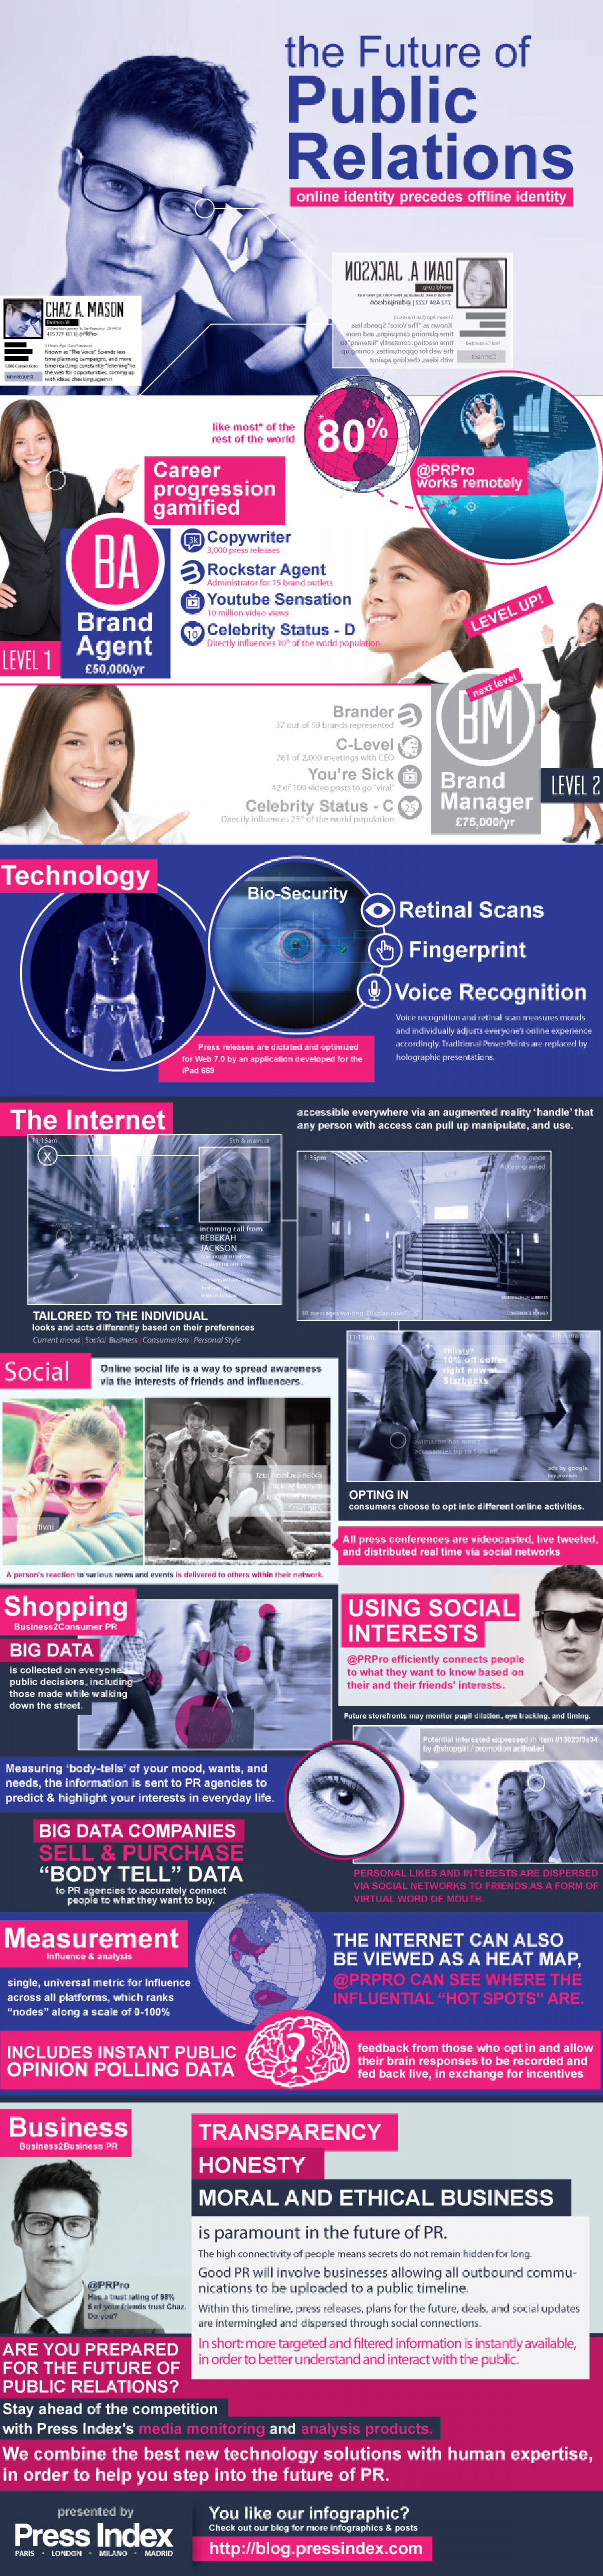 The Future of Public Relations Infographic